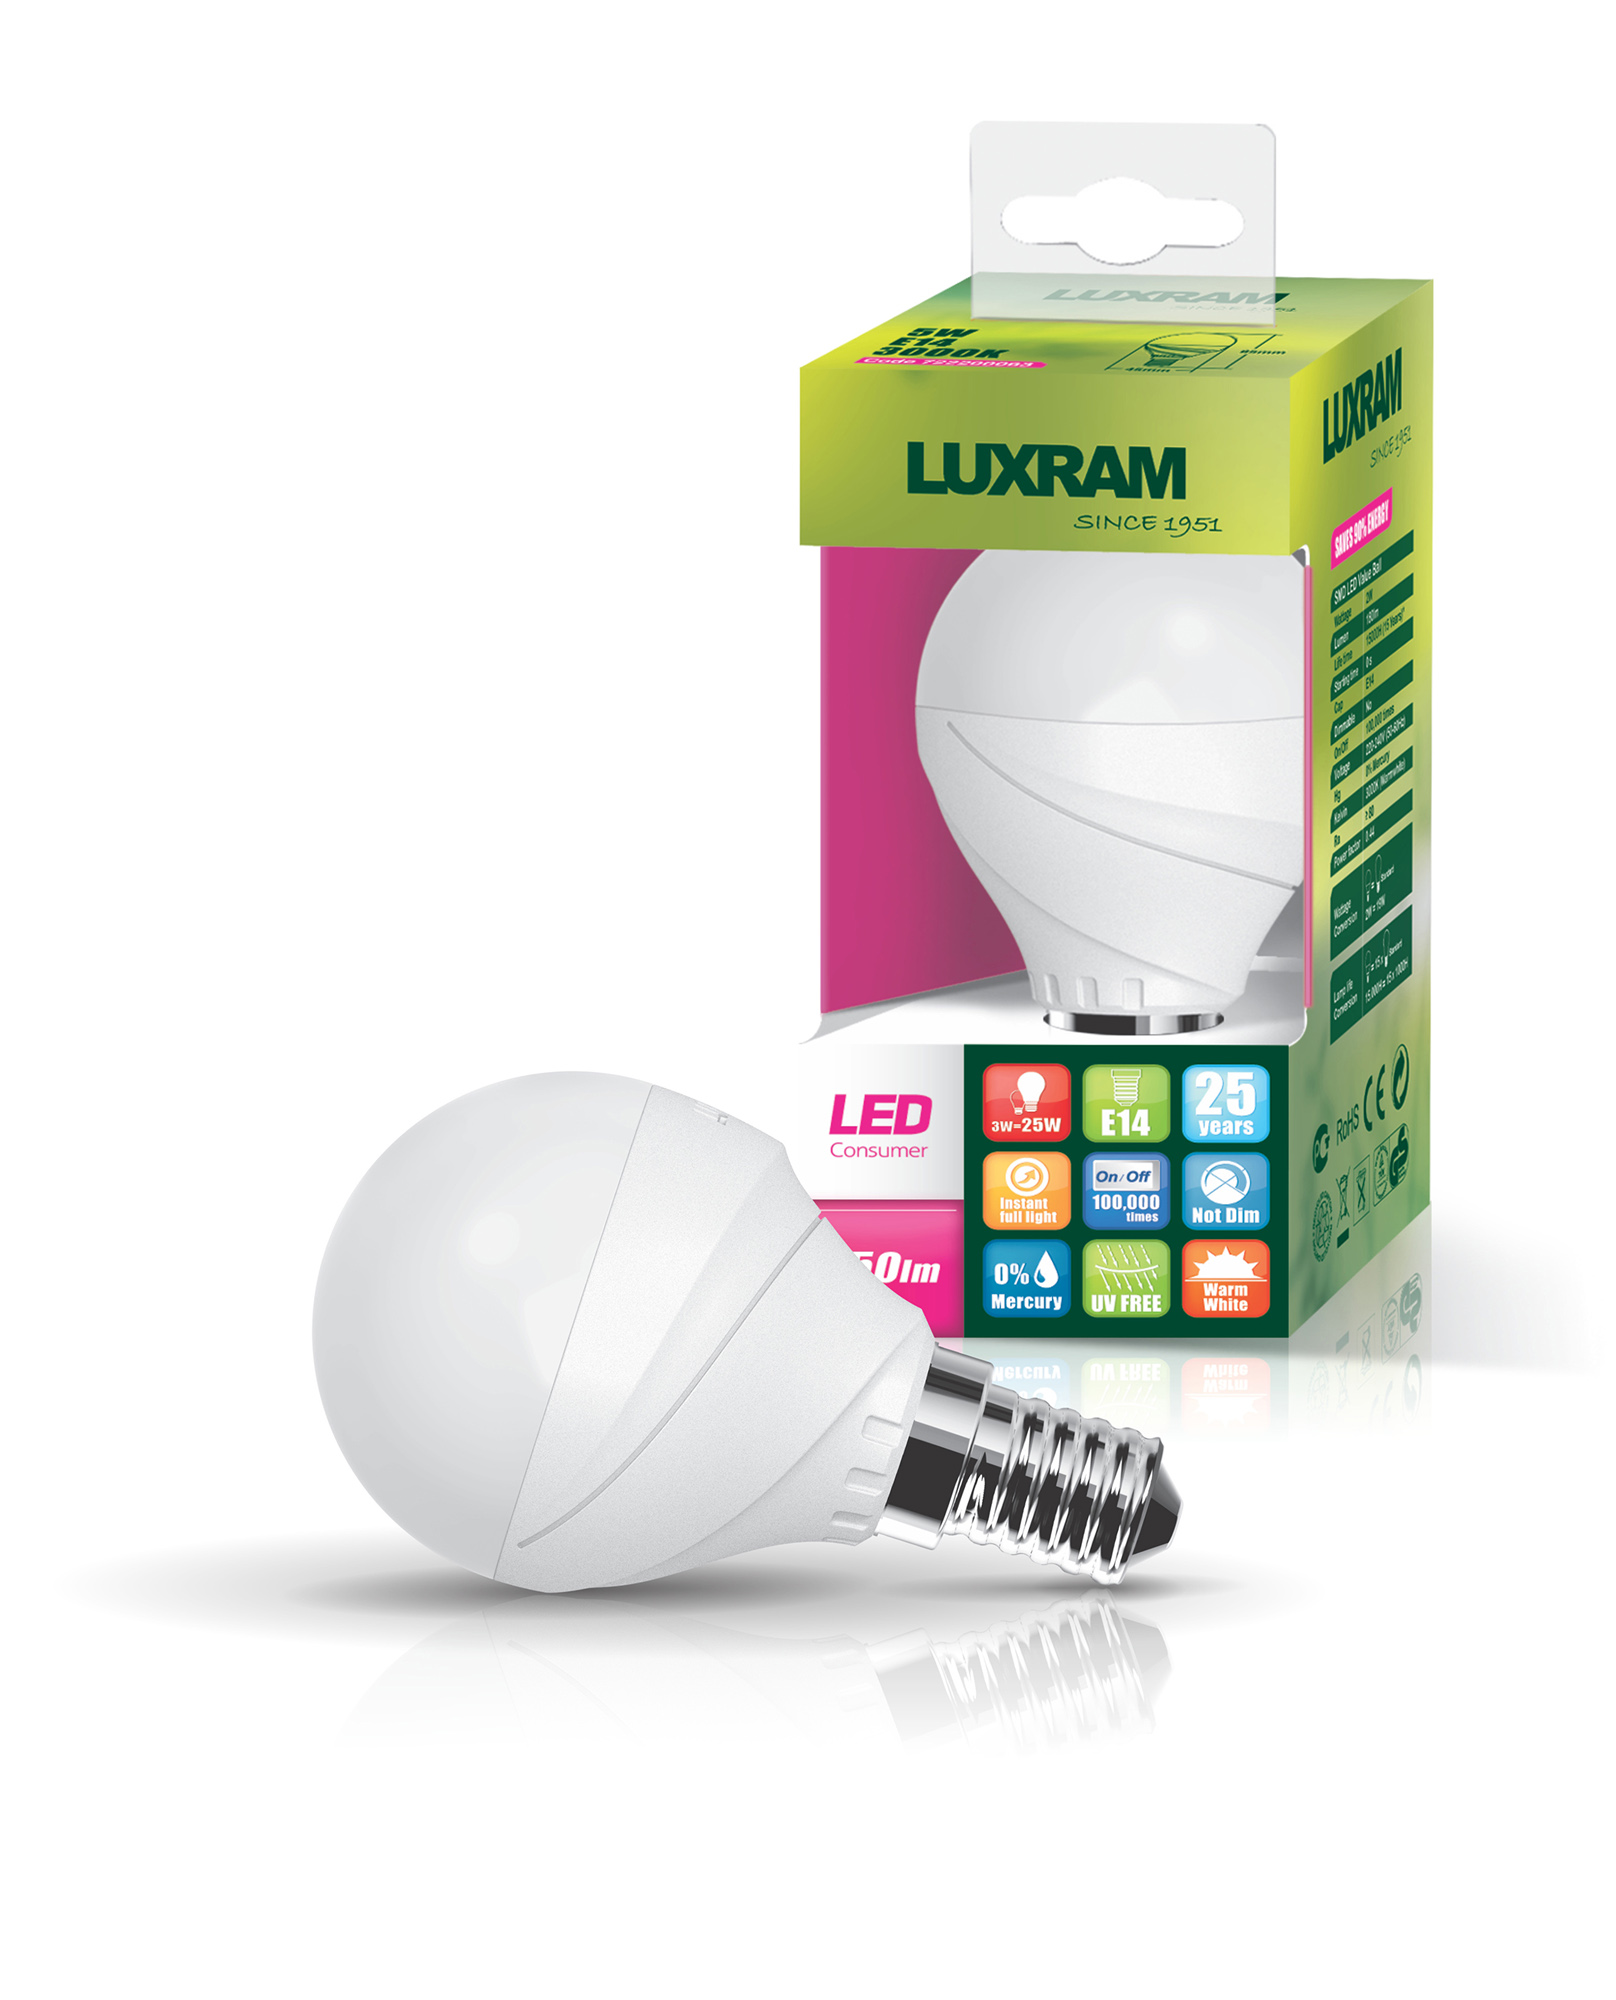 Curvodo LED Lamps Luxram Golf Ball